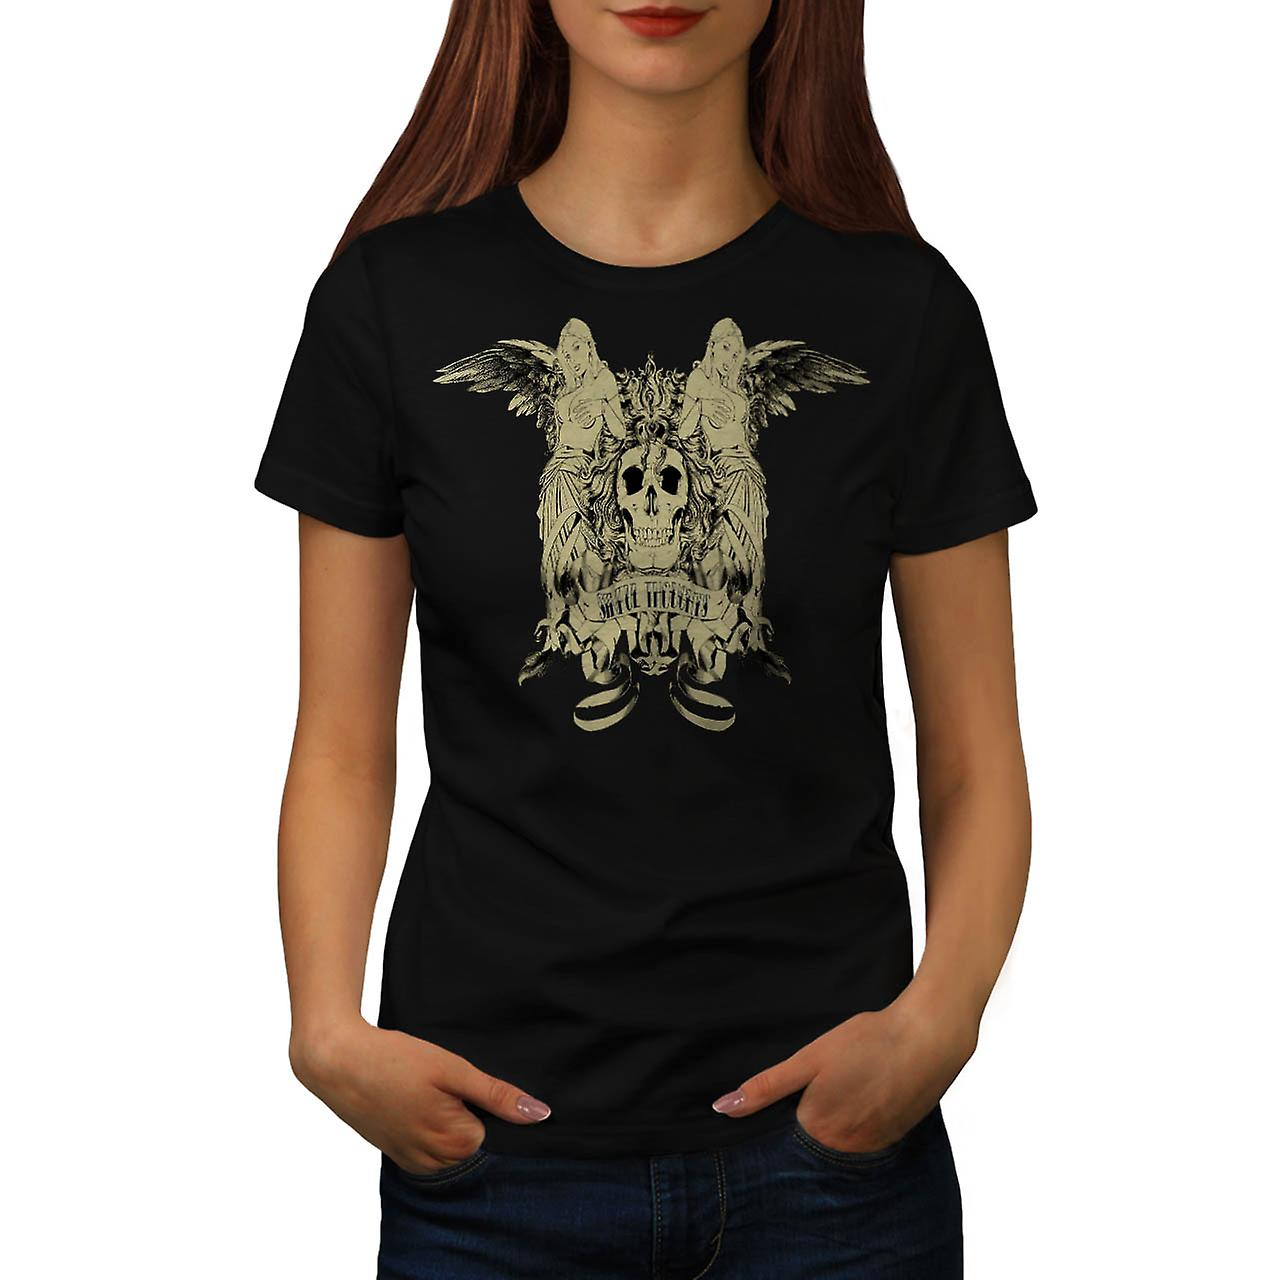 Syndiga tankar City skalle Angel kvinnor svart T-shirt | Wellcoda